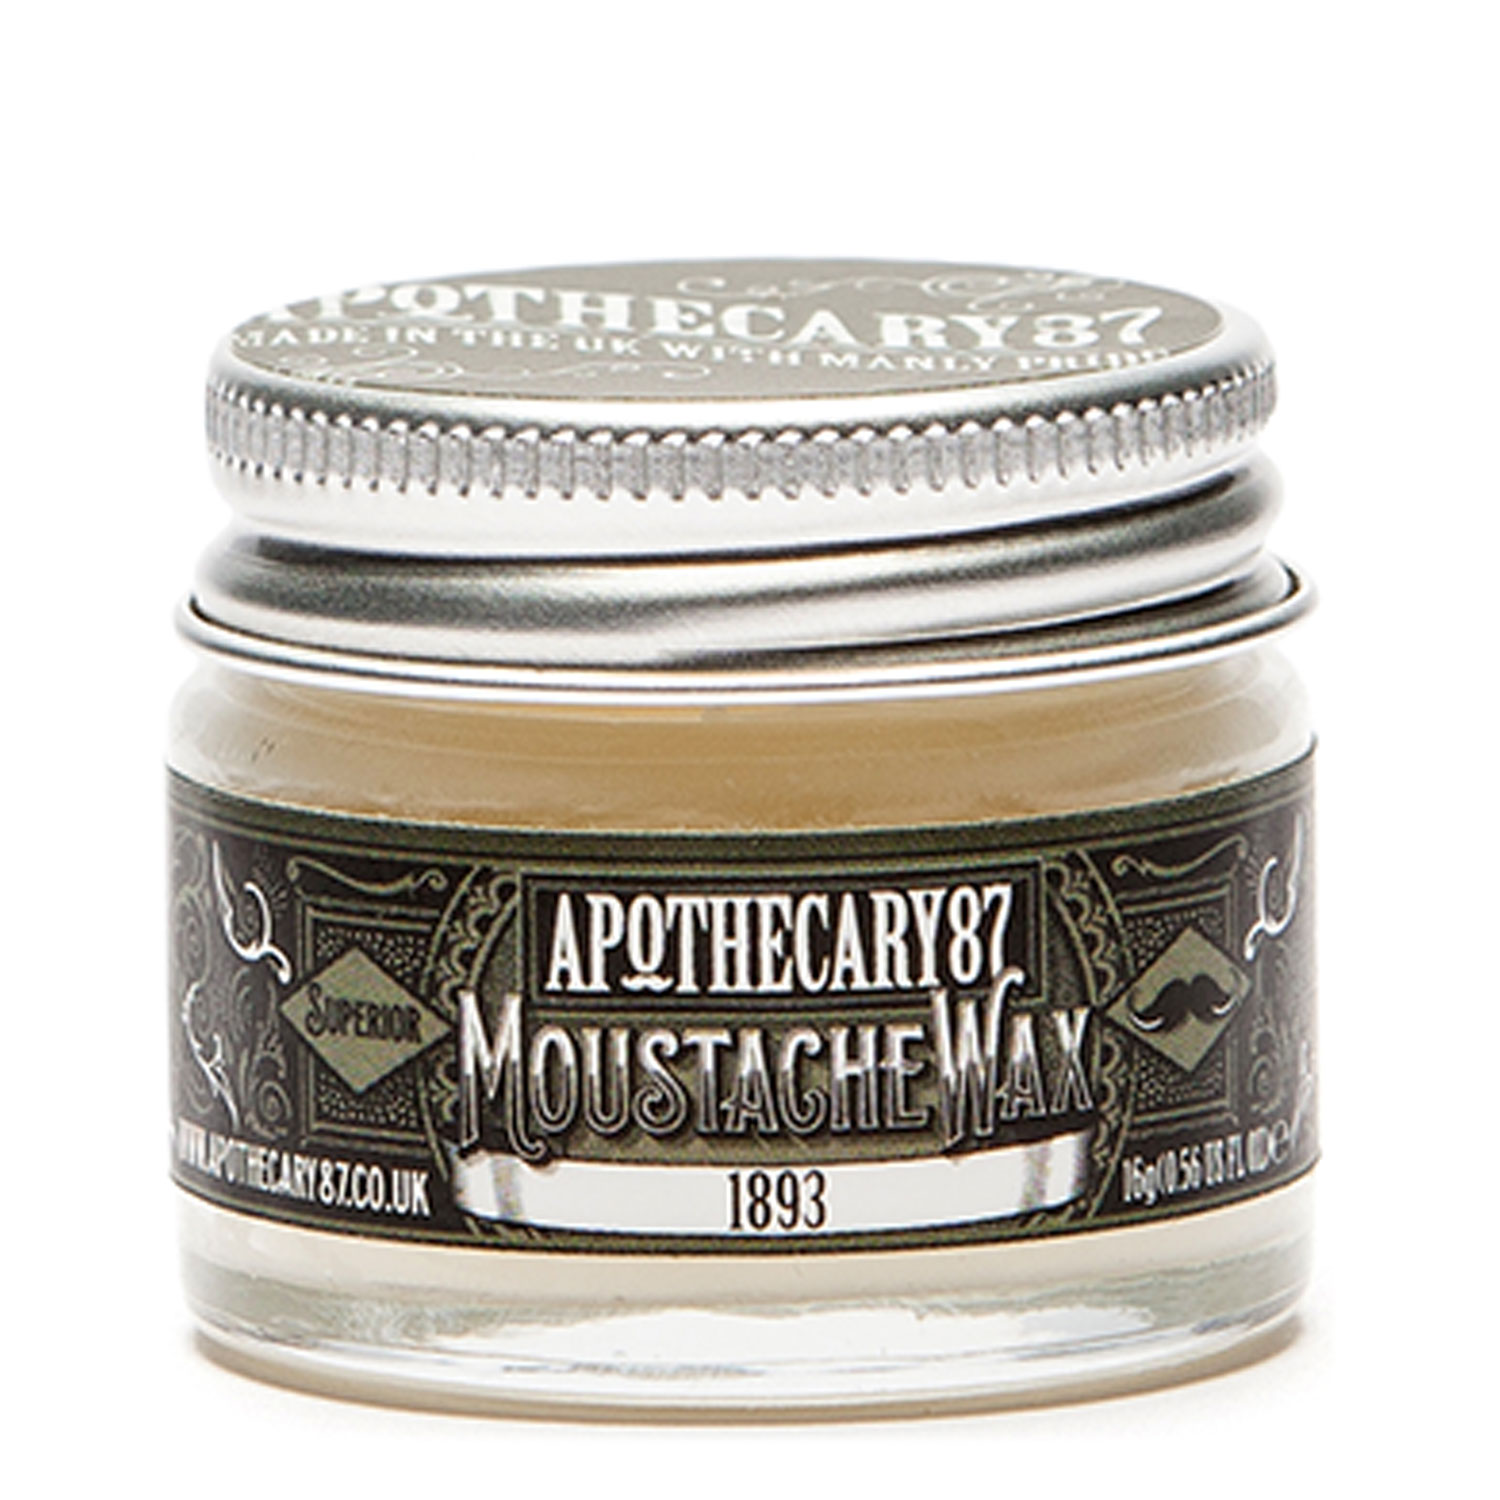 Apothecary87 Grooming - Moustache Wax 1893 Fragrance